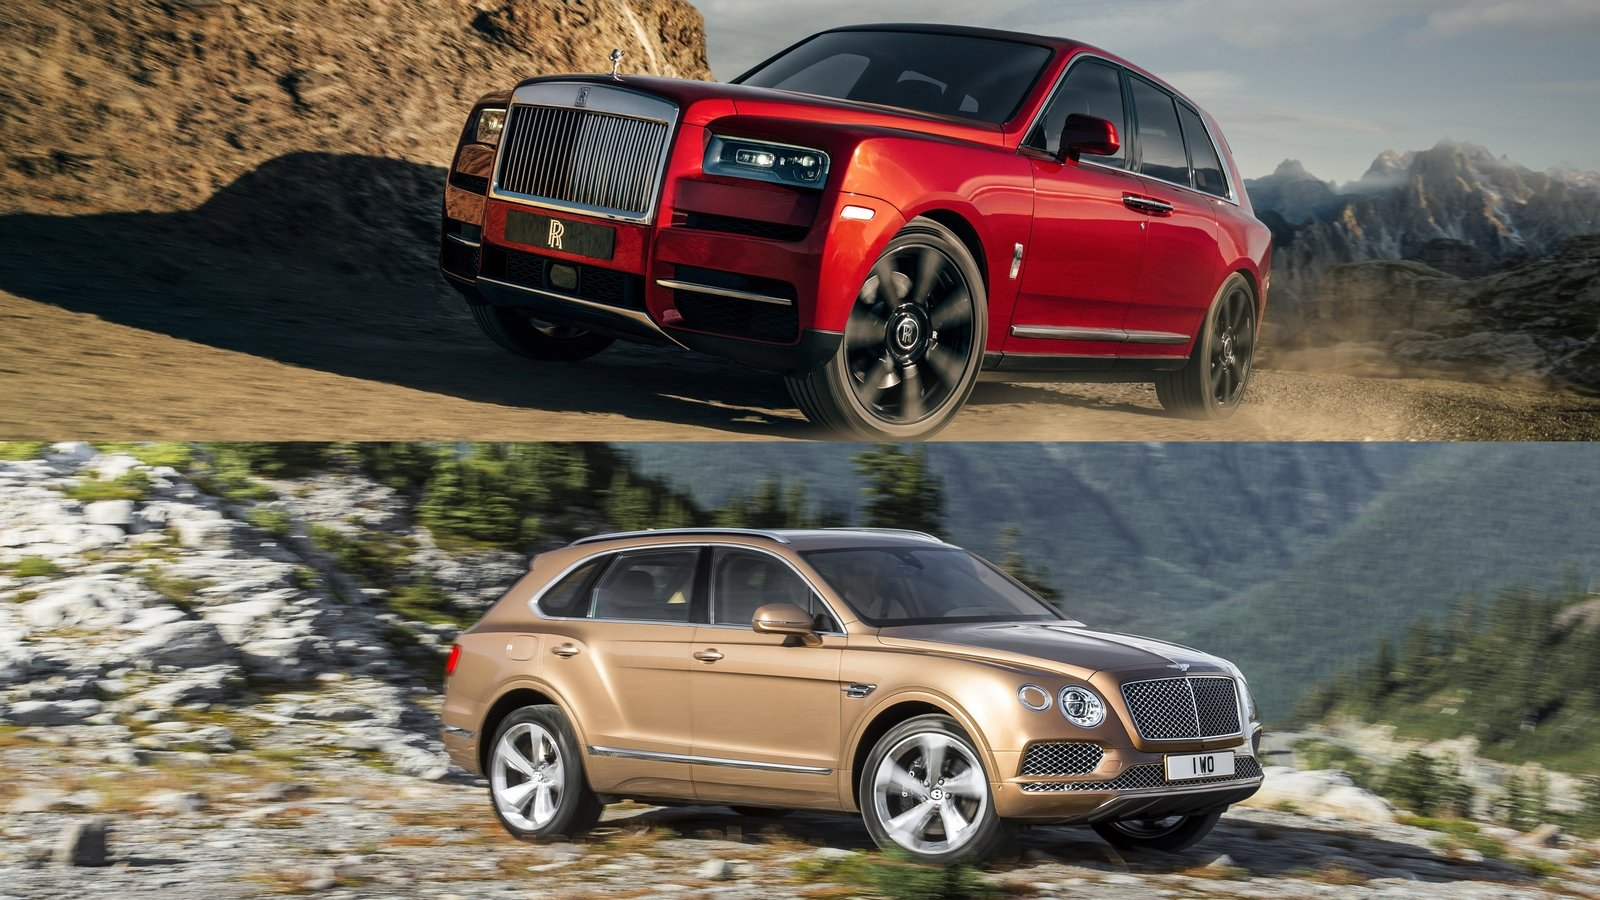 Comparison 2018 Bentley Bentayga Vs 2019 Rolls Royce